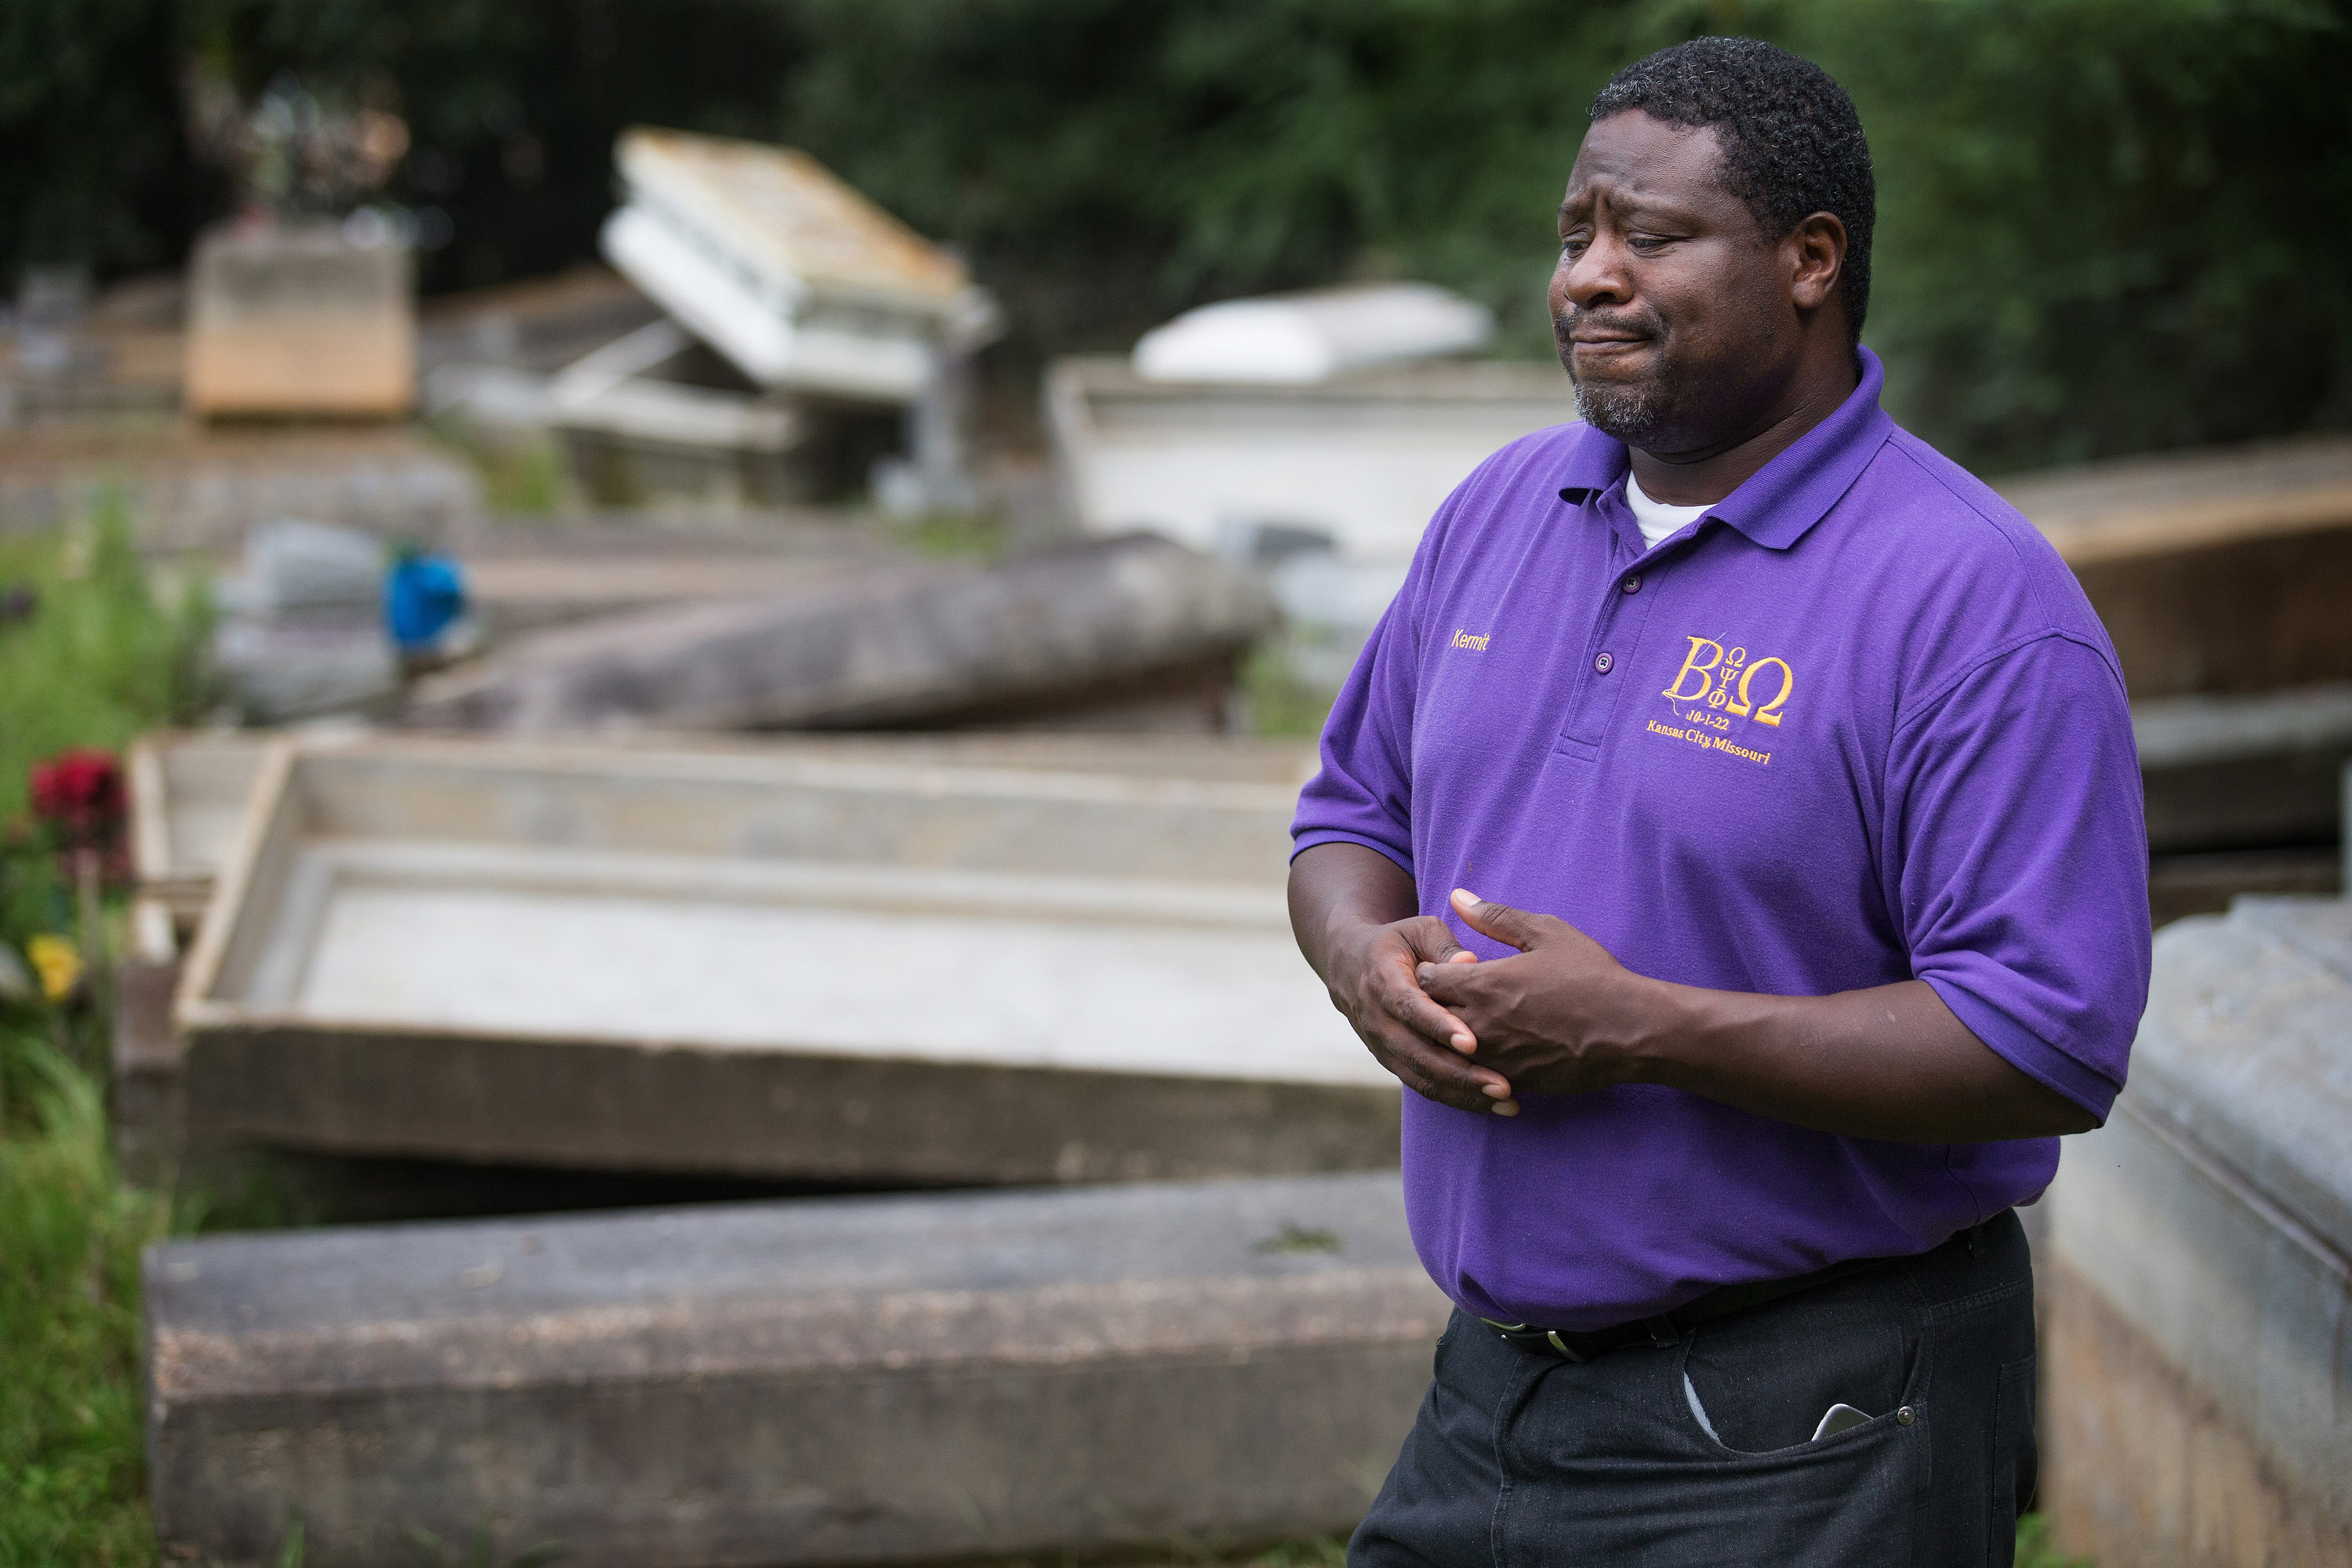 The Rev. Kermit Roberson surveys flood damage at Roberts United Methodist Church's Plainview Cemetery in Denham Springs, La., where floodwaters lifted many caskets out of their concrete burial vaults. Photo by Mike DuBose, UM News.